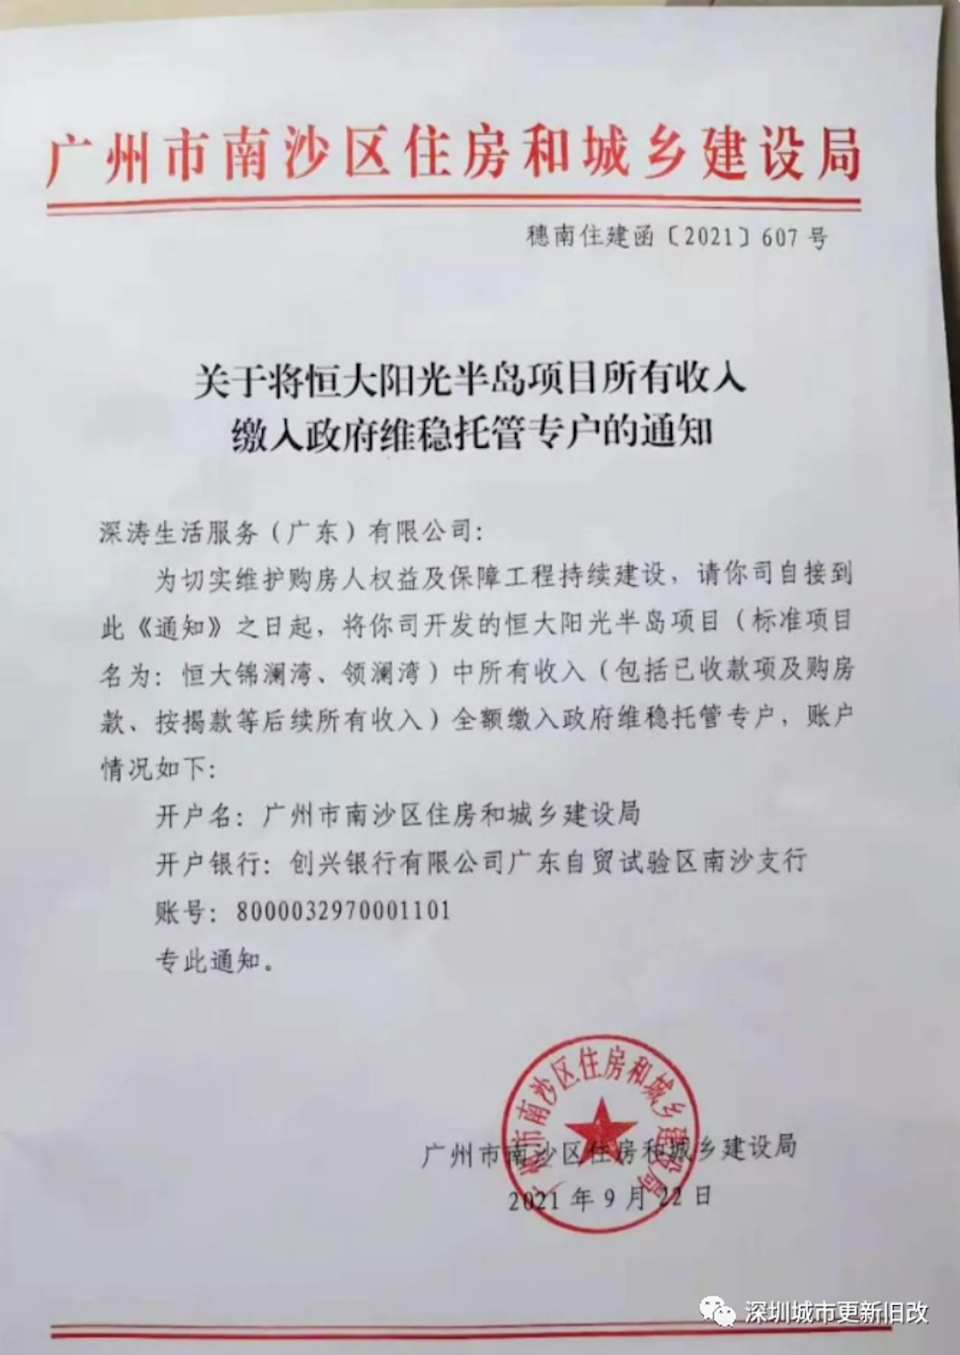 A notice by the Nansha housing authority in the Guangdong provincial capital of Guangzhou, about putting all sales proceeds from Evergrande's local sales office in escrow to ensure stability, dated September 22, 2021. Photo: Iris Ouyang.